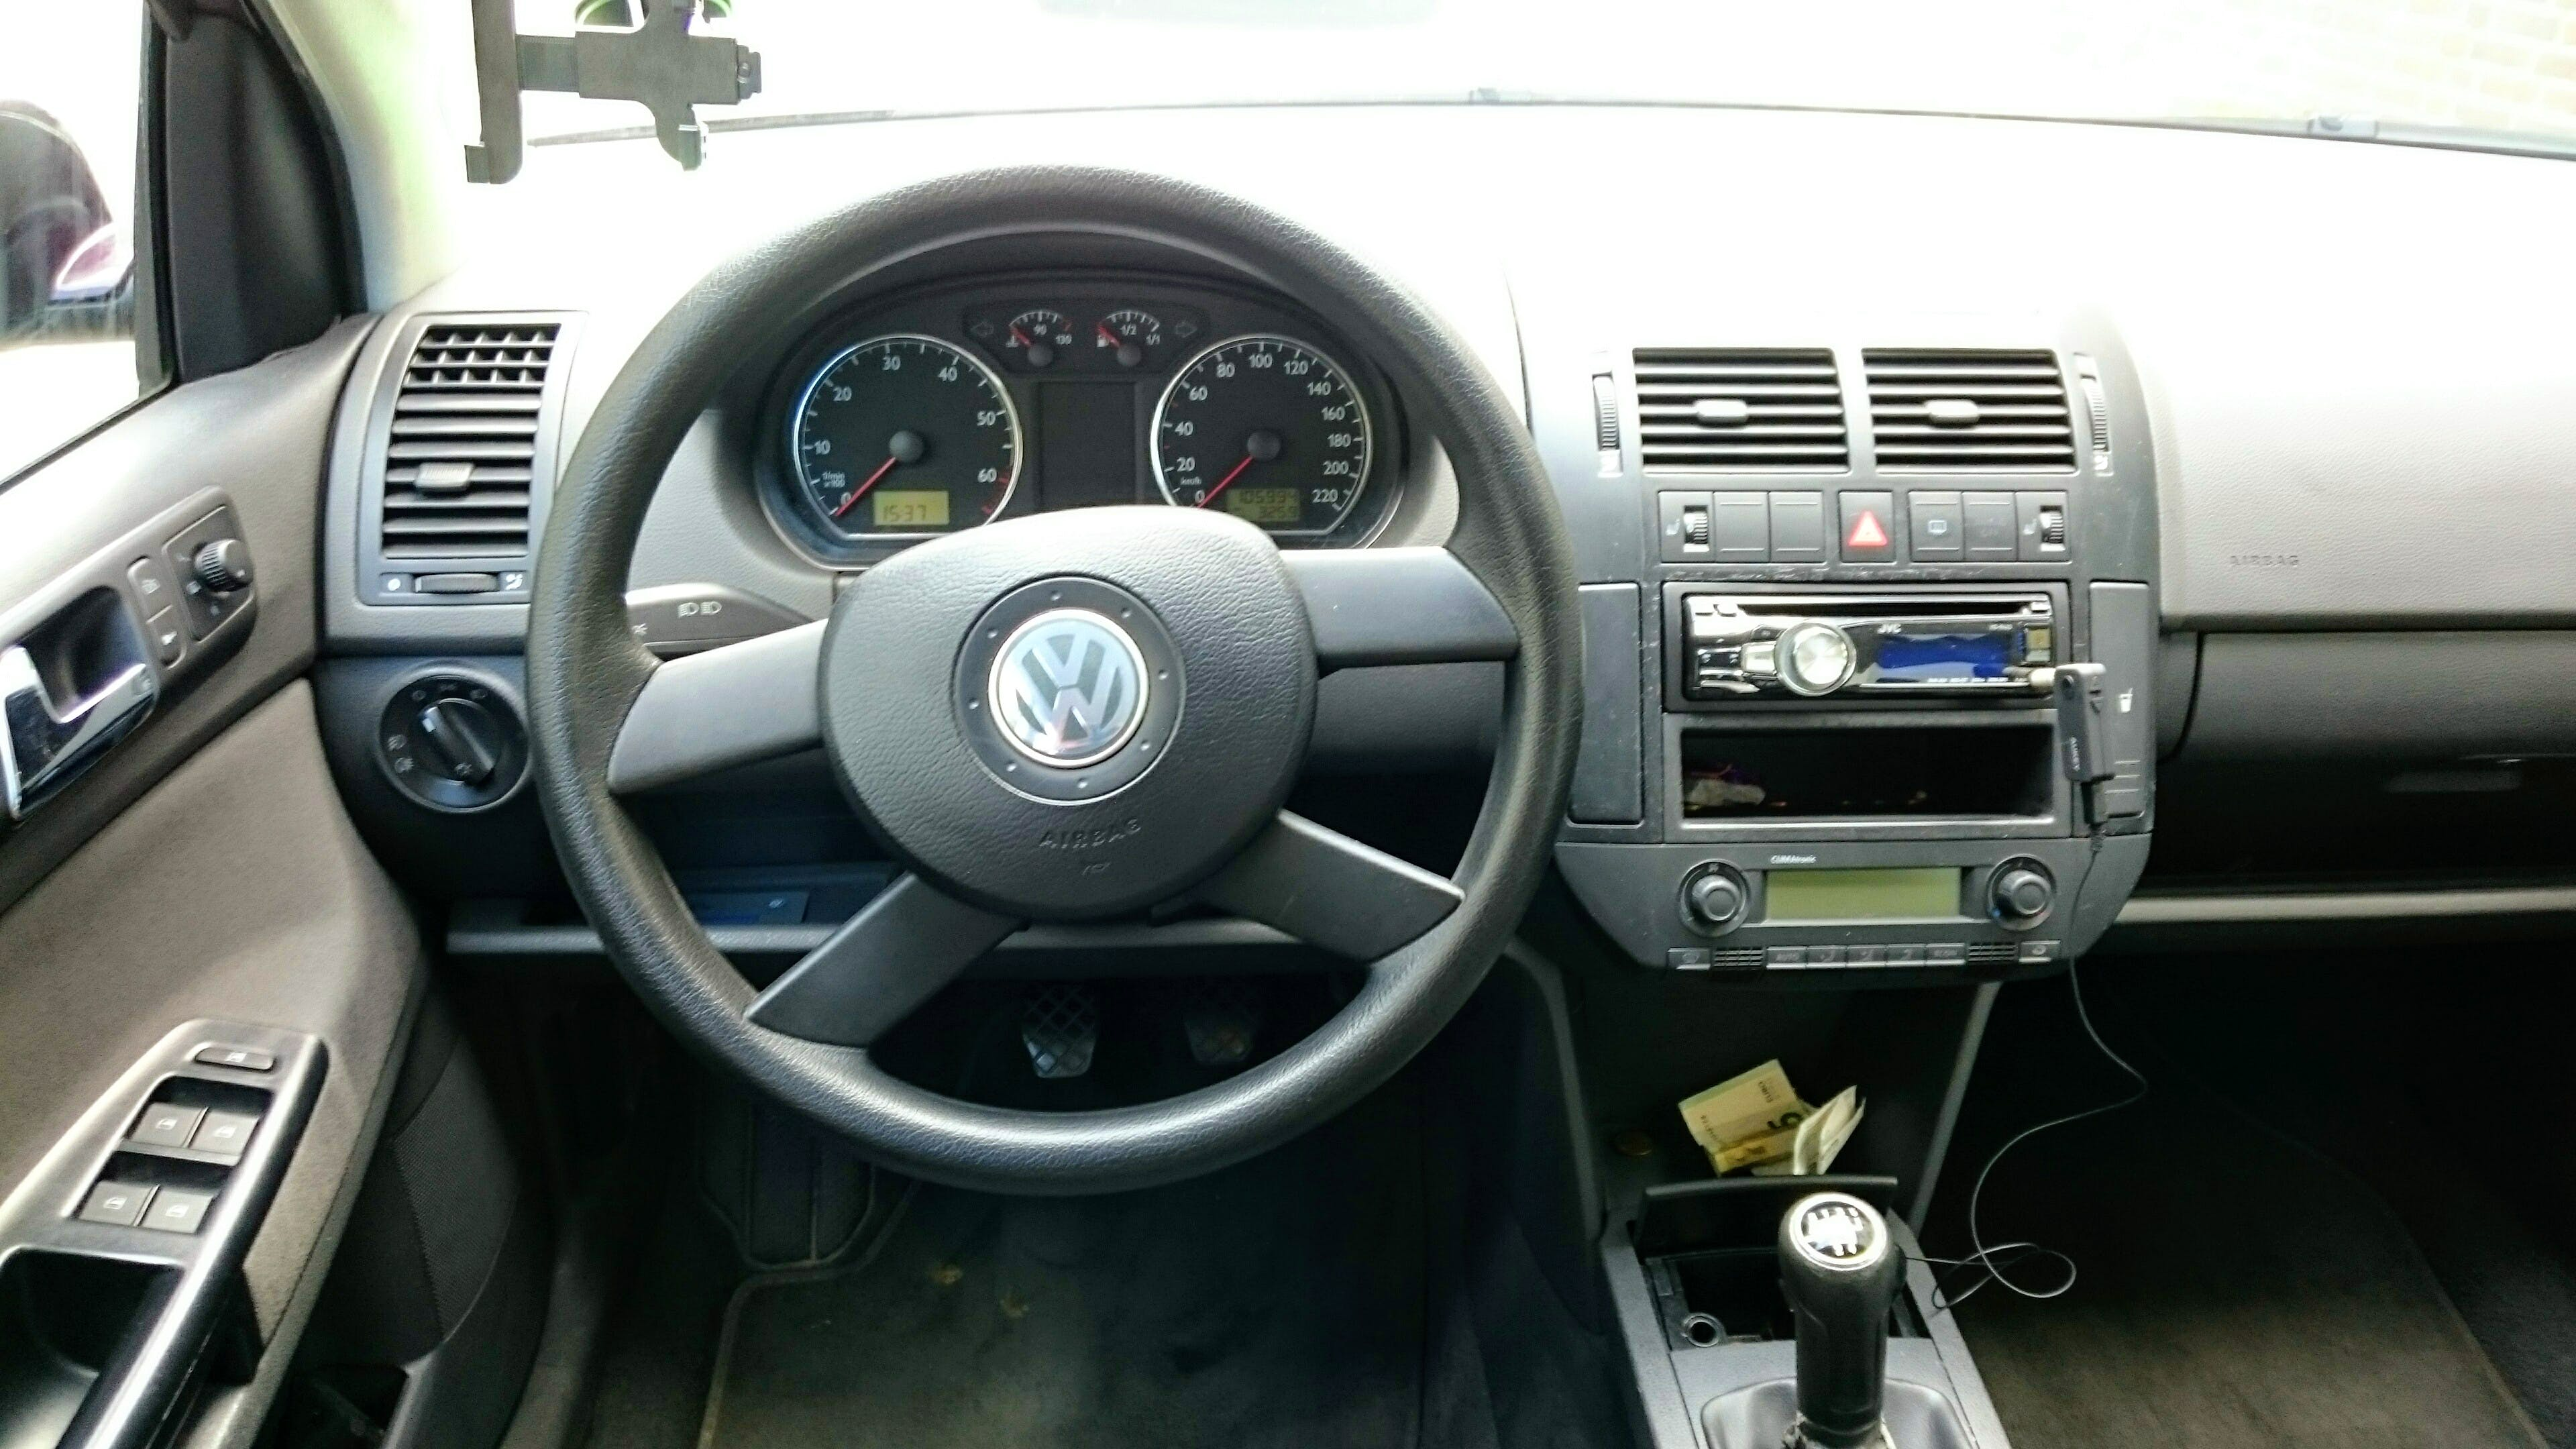 Volkswagen Polo 1.4 mit Audio-/iPod-Zugang